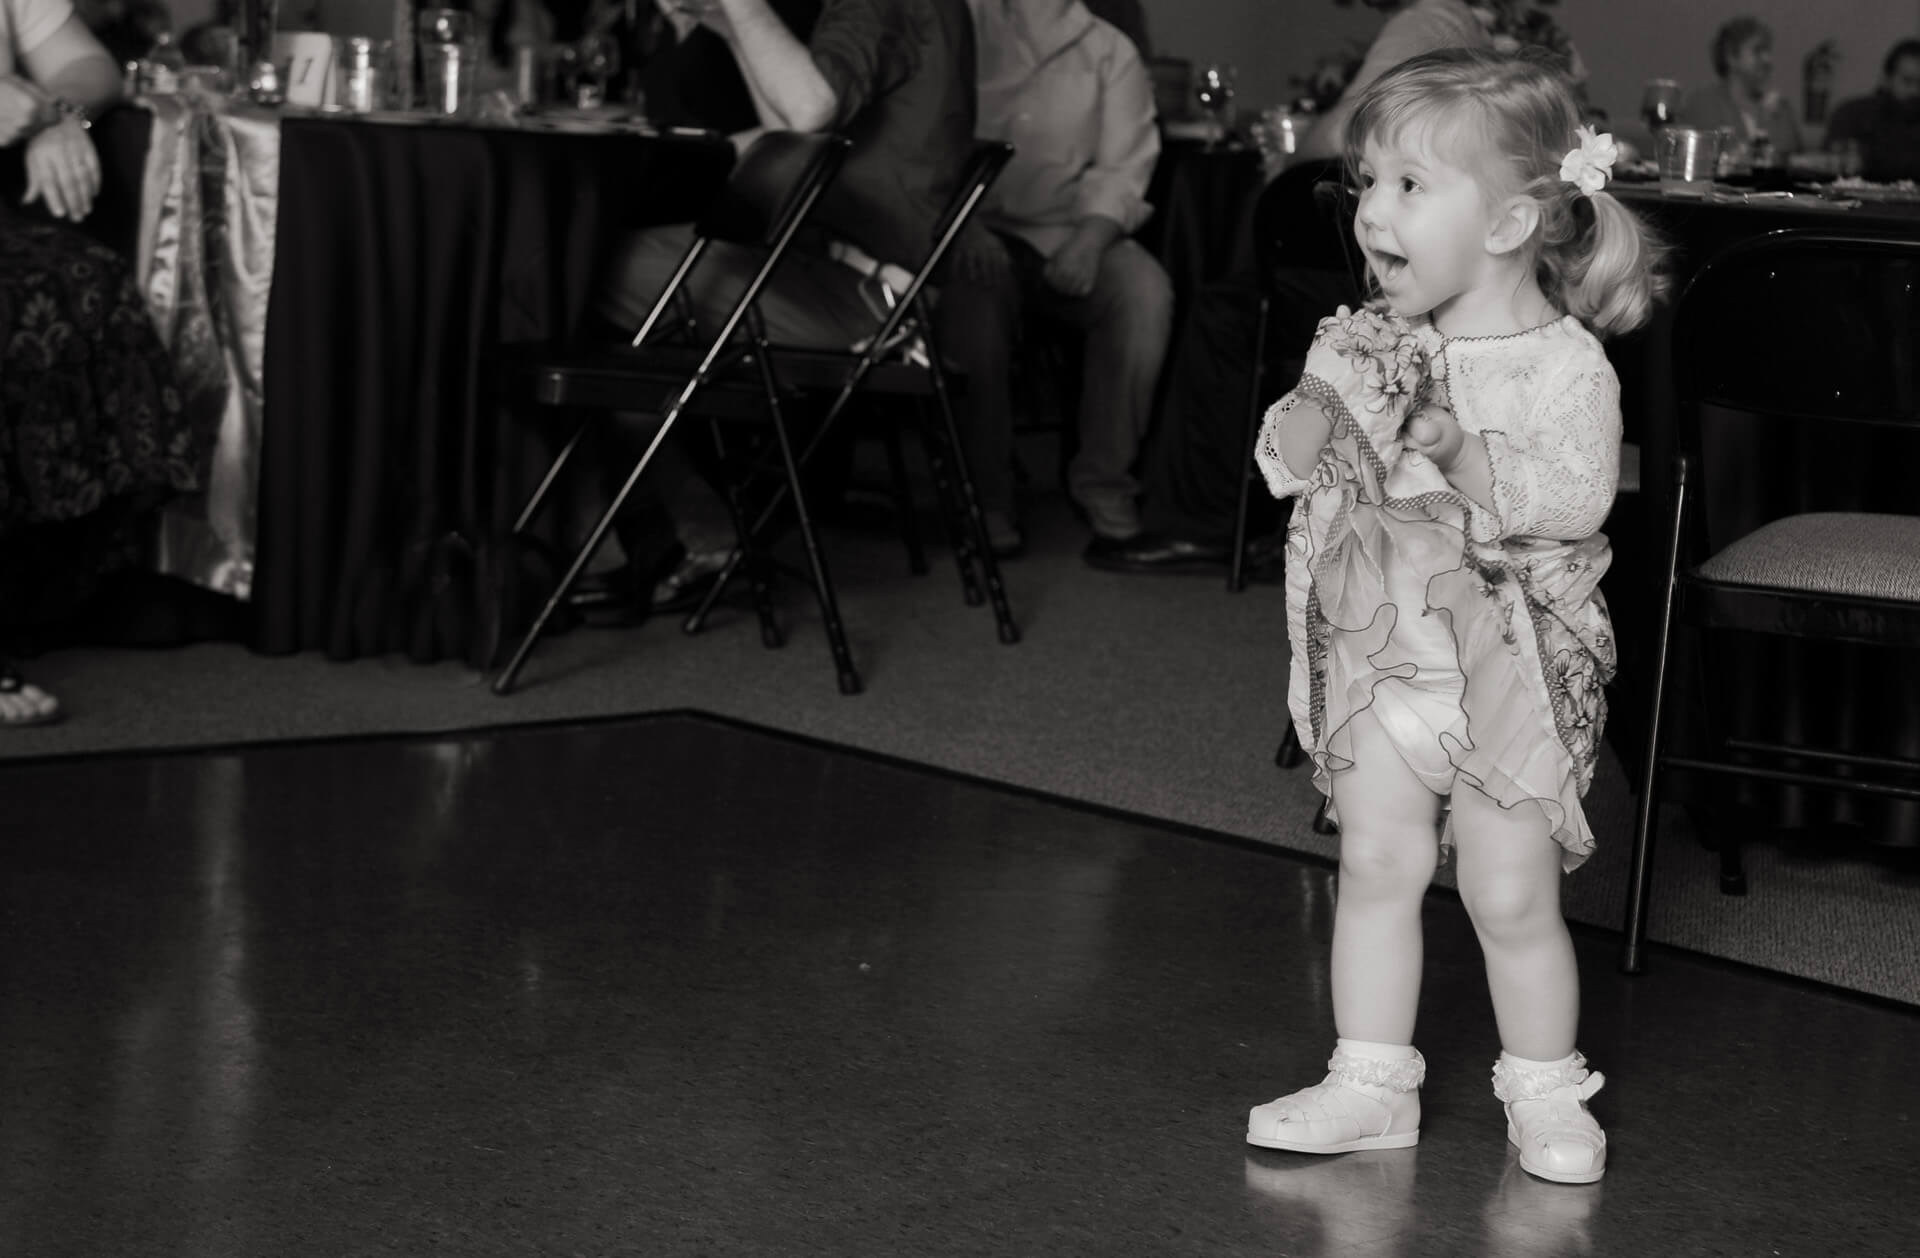 Candid wedding photography showing a little guest at a metro Detroit, Michigan lifting up her skirt for all to see at the wedding reception.